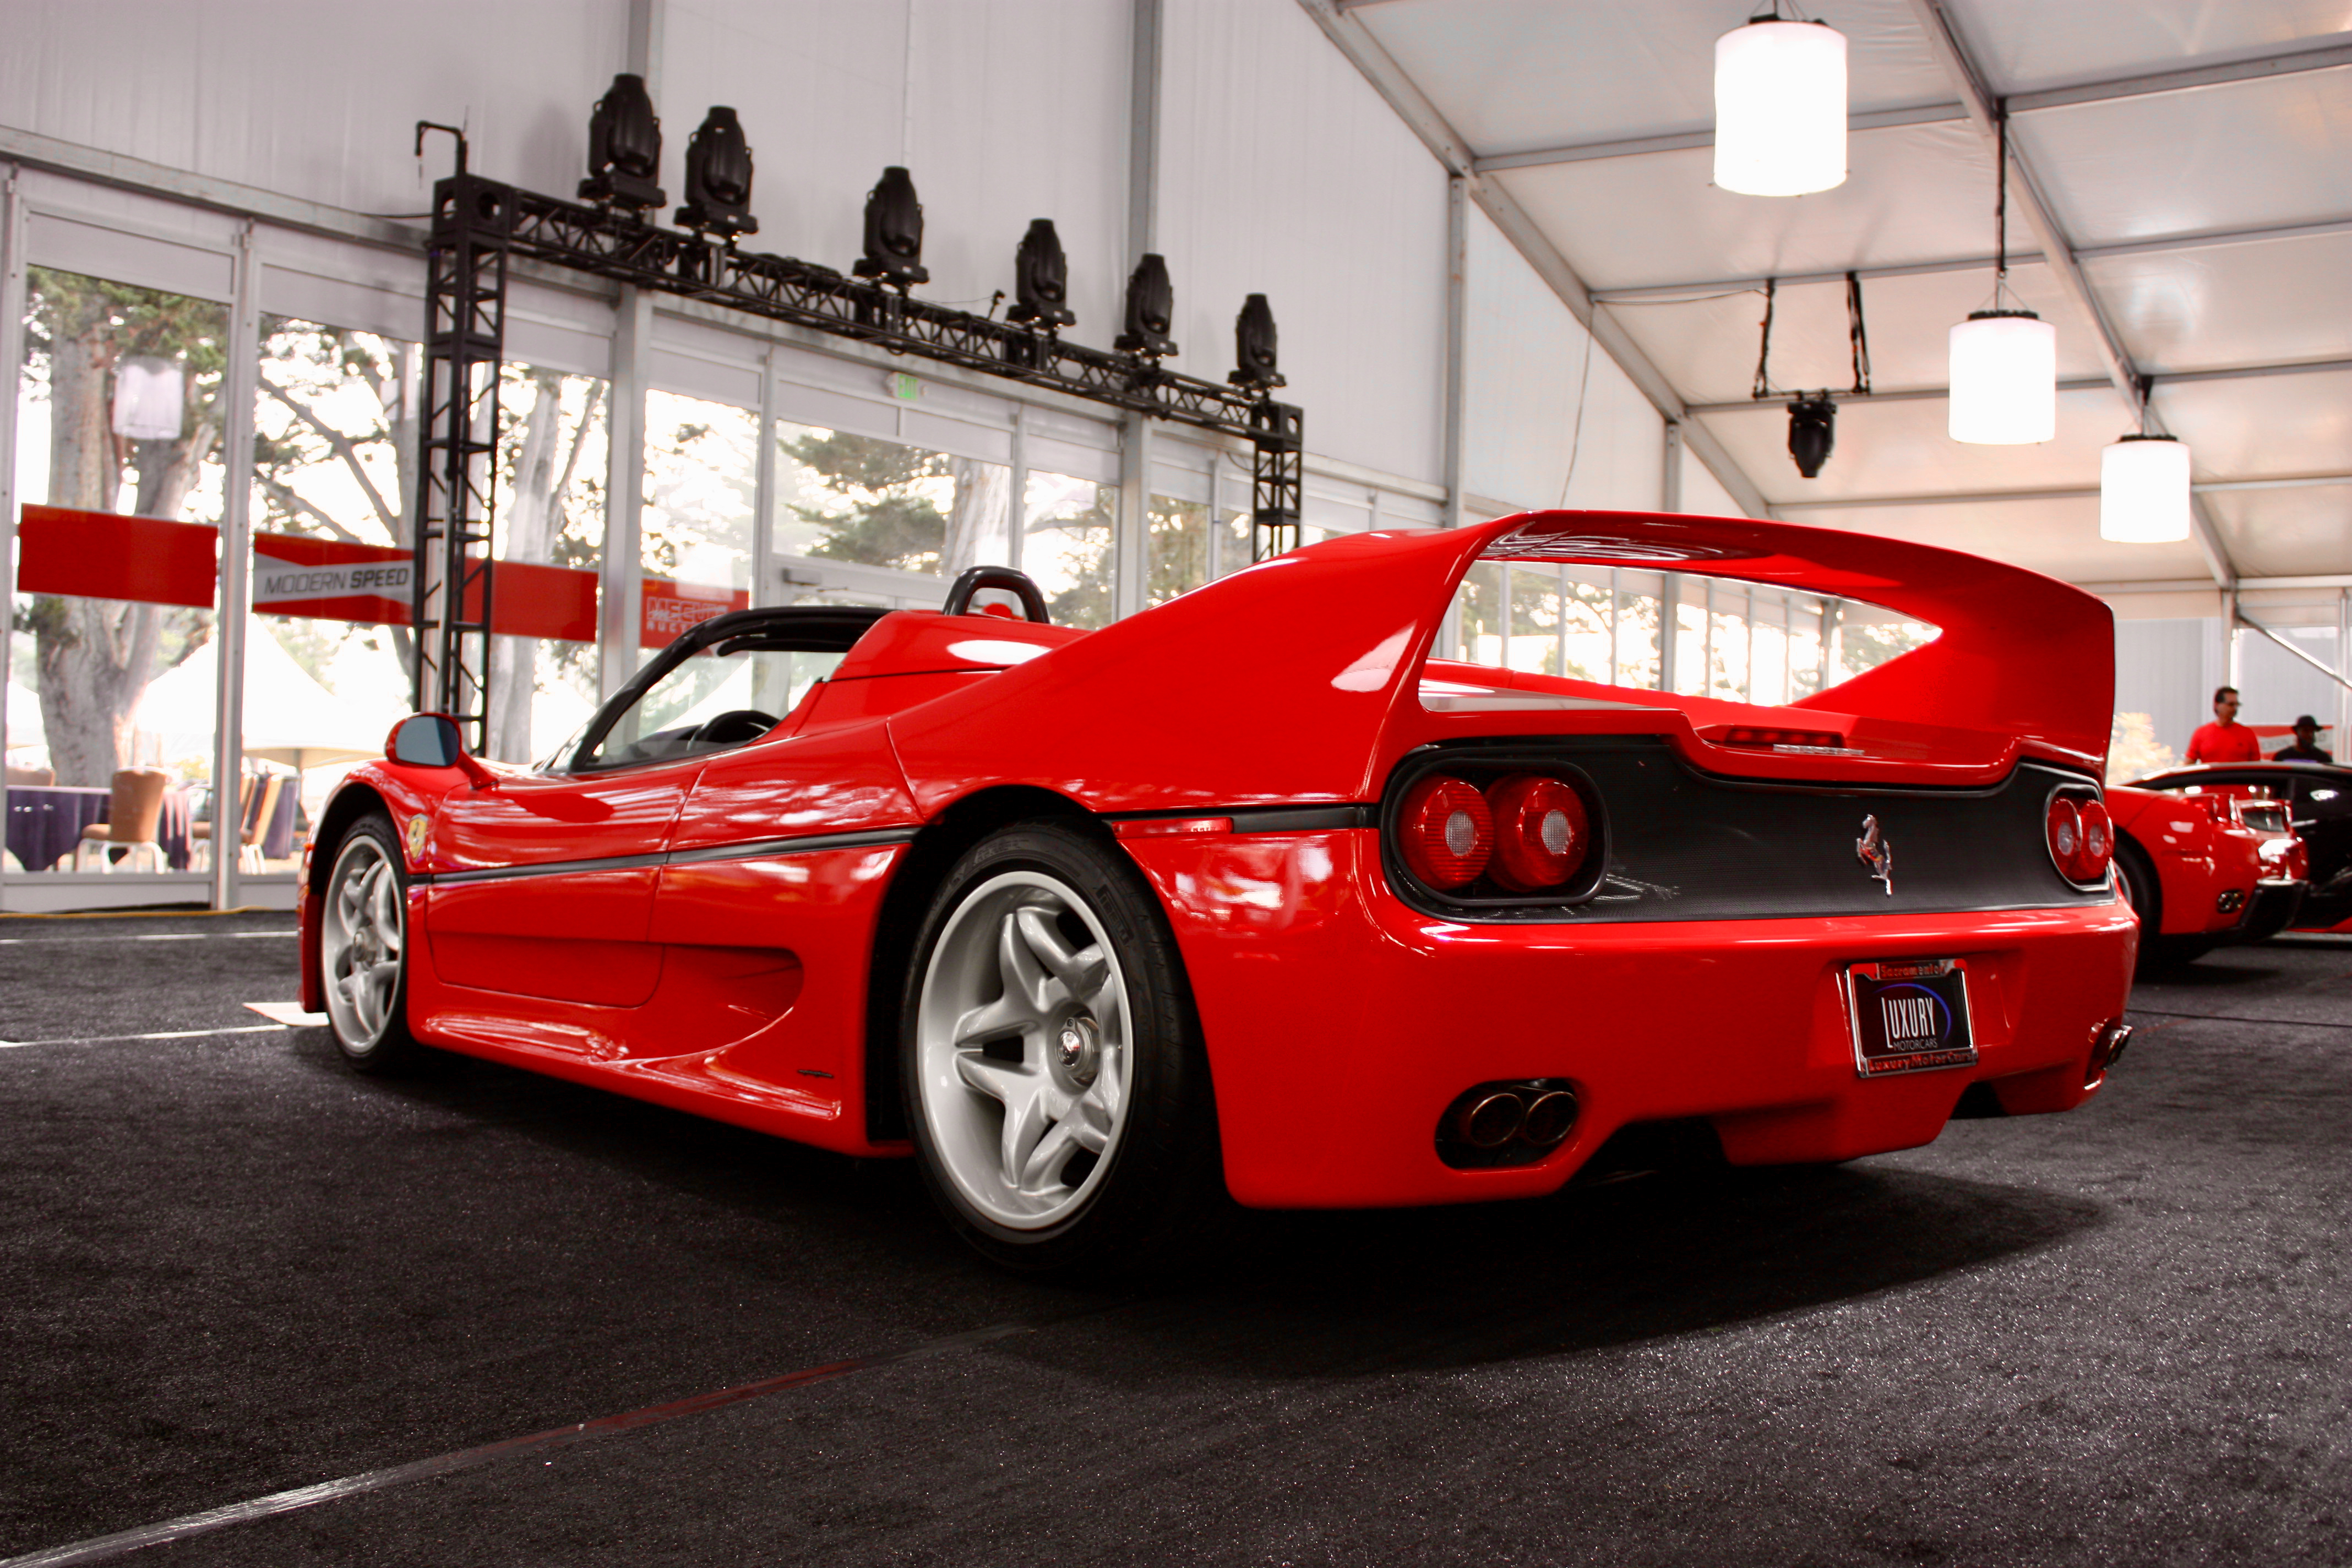 ferrari f50 latest news, reviews, specifications, prices, photos